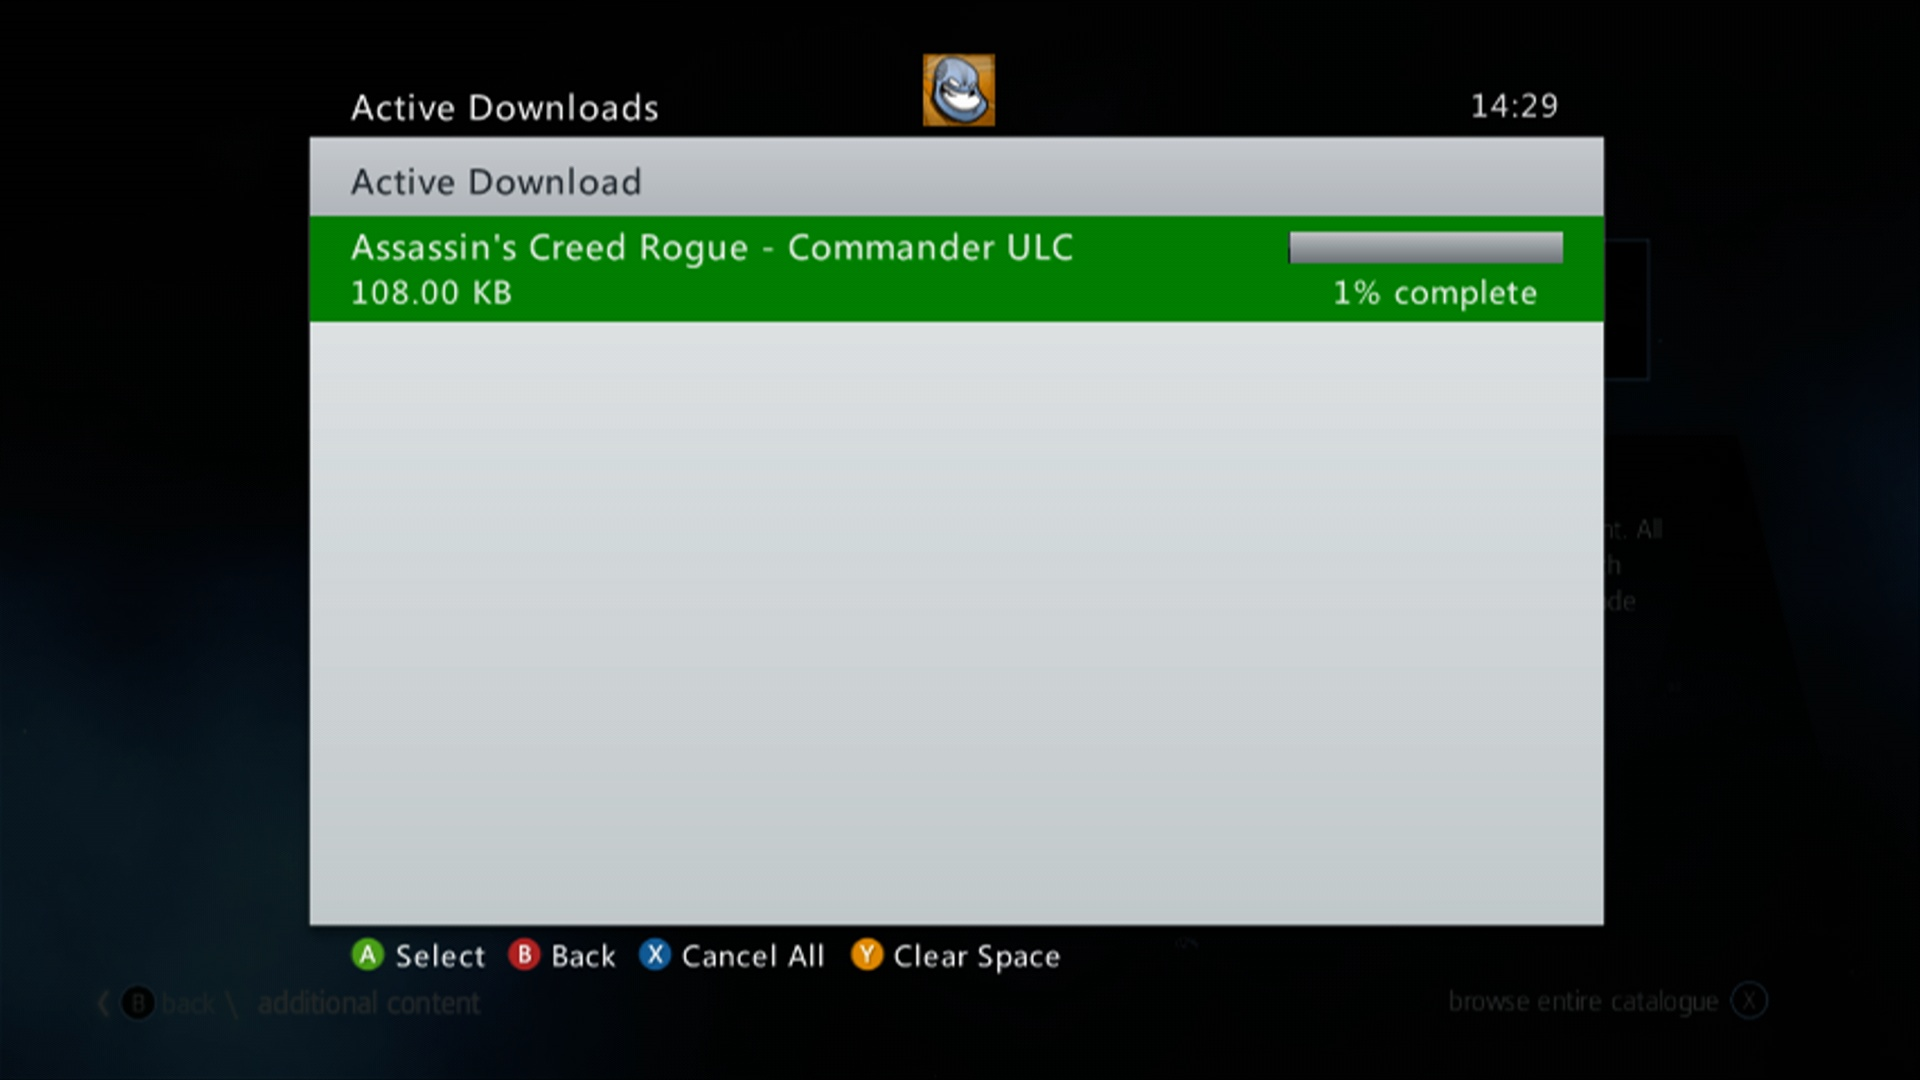 Time to download